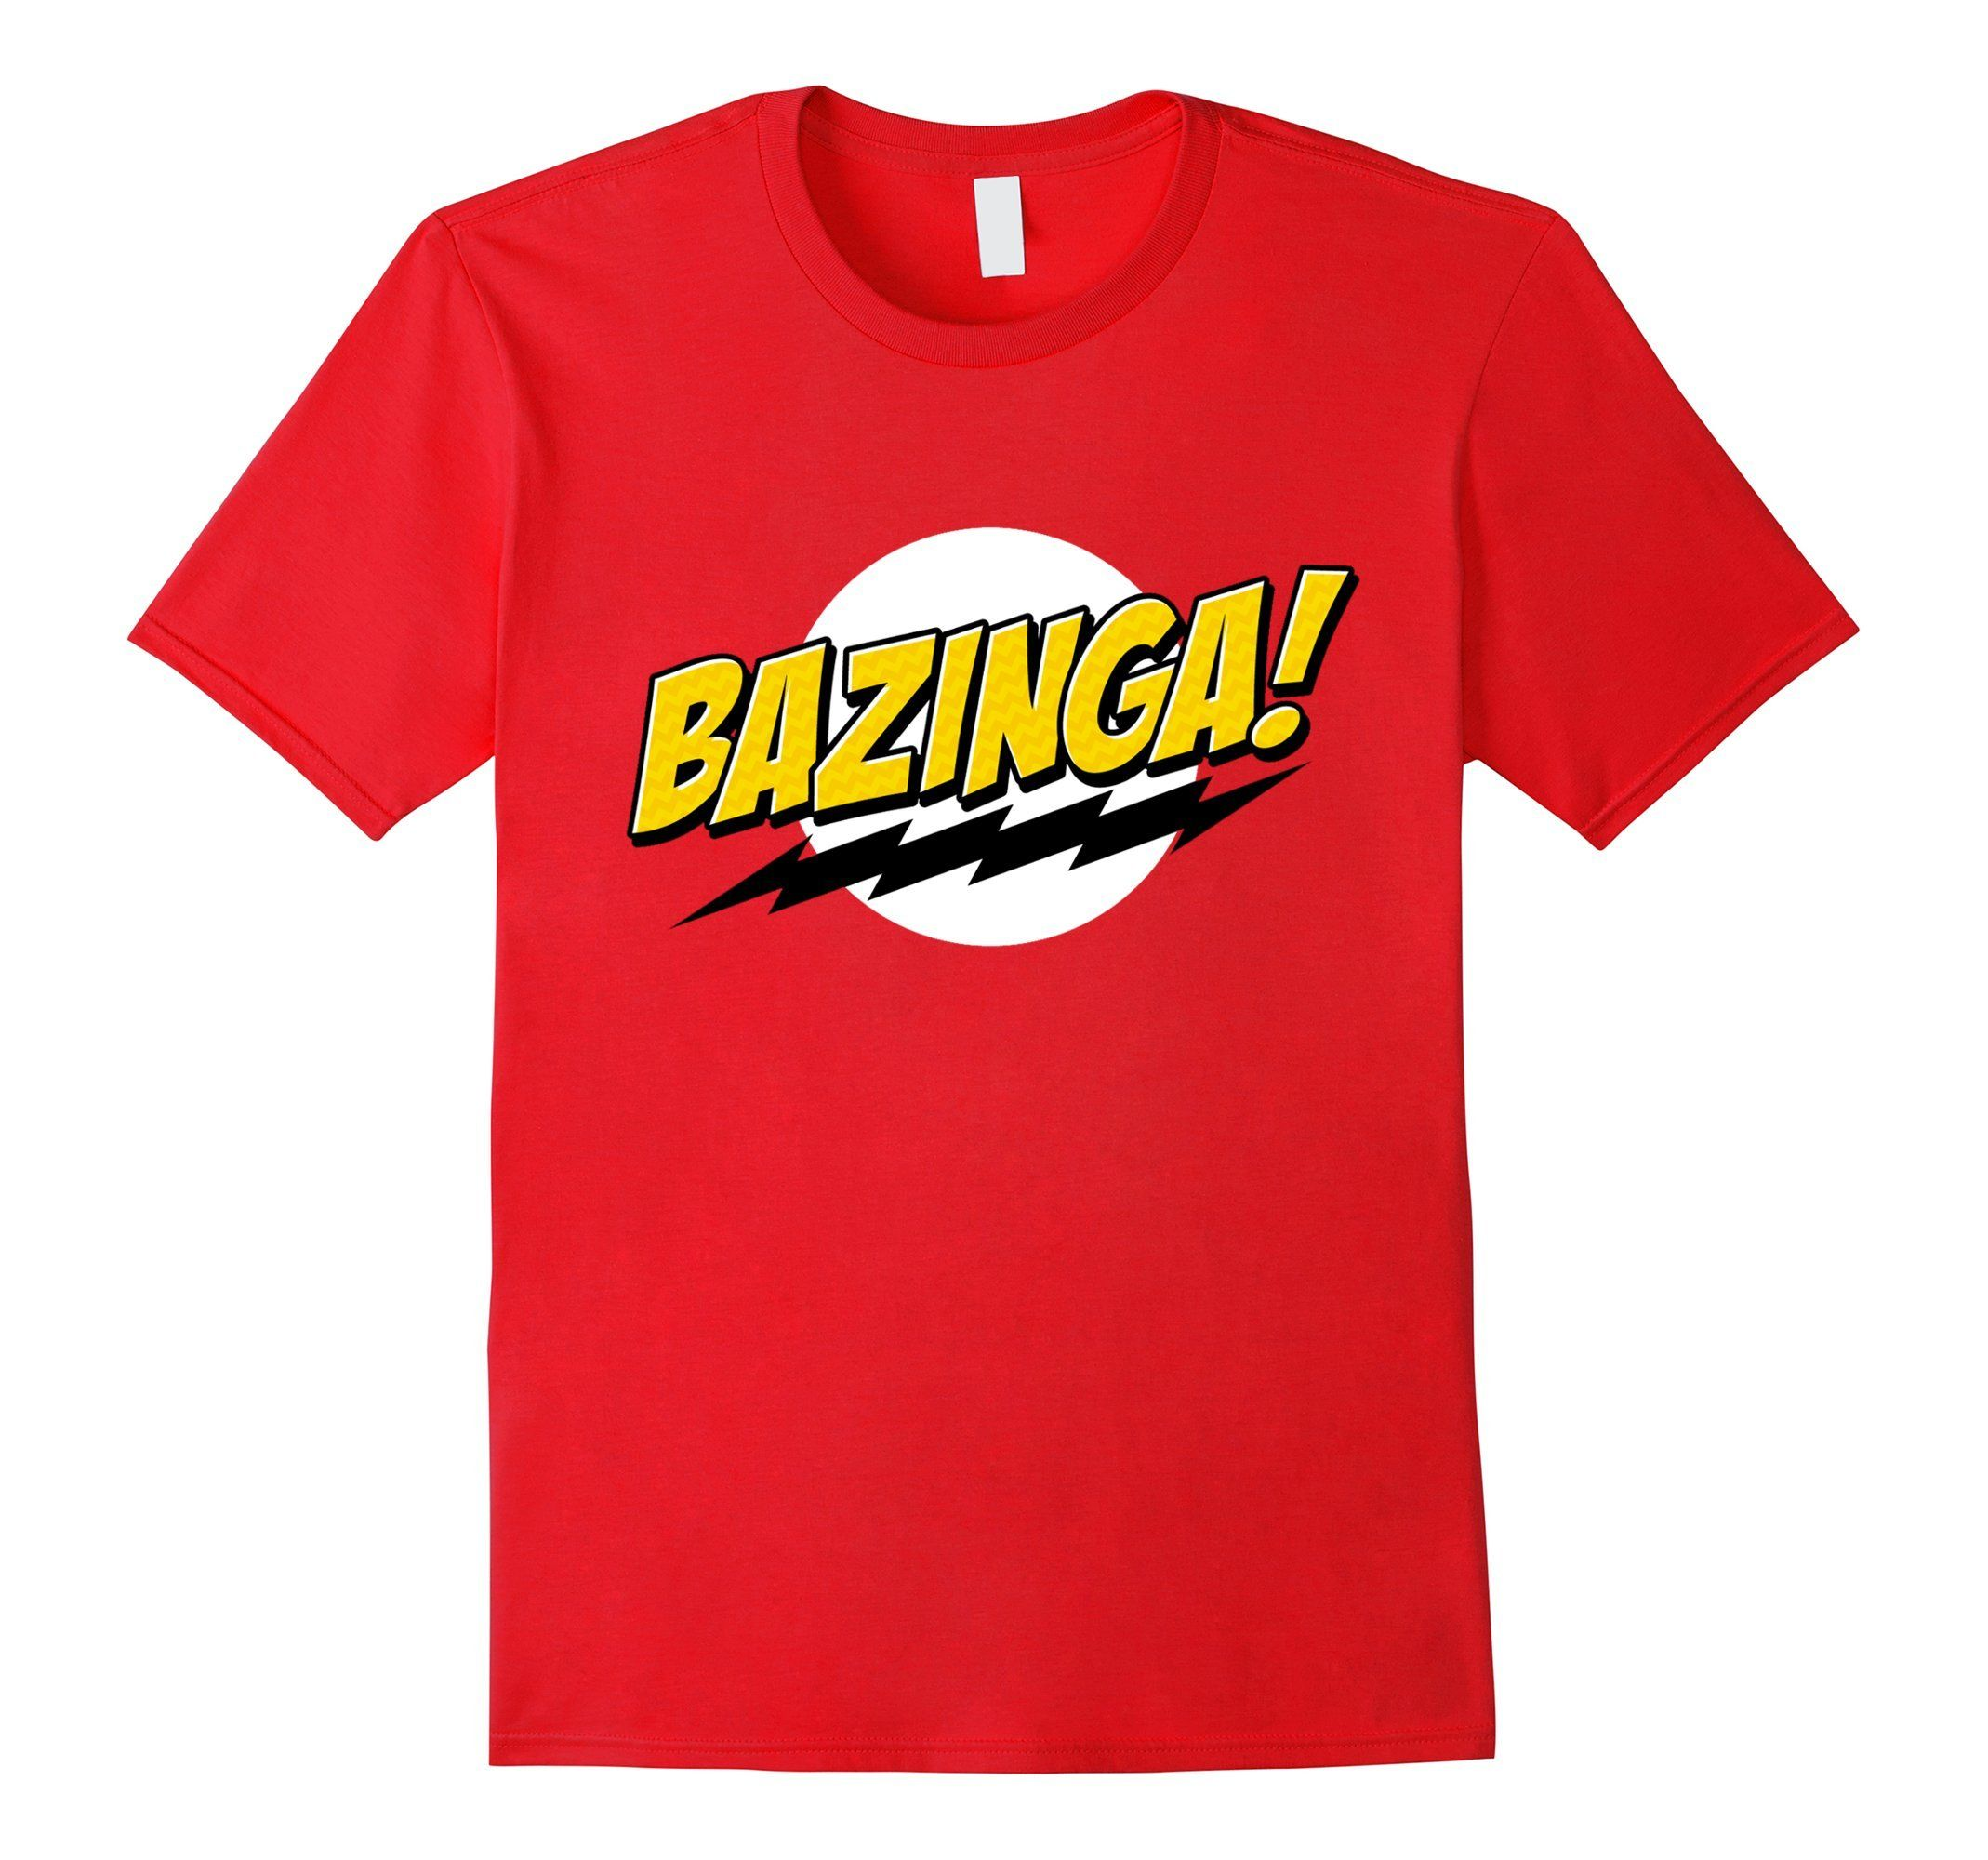 1d86a4f77 Big Bang Theory T Shirts Amazon - DREAMWORKS